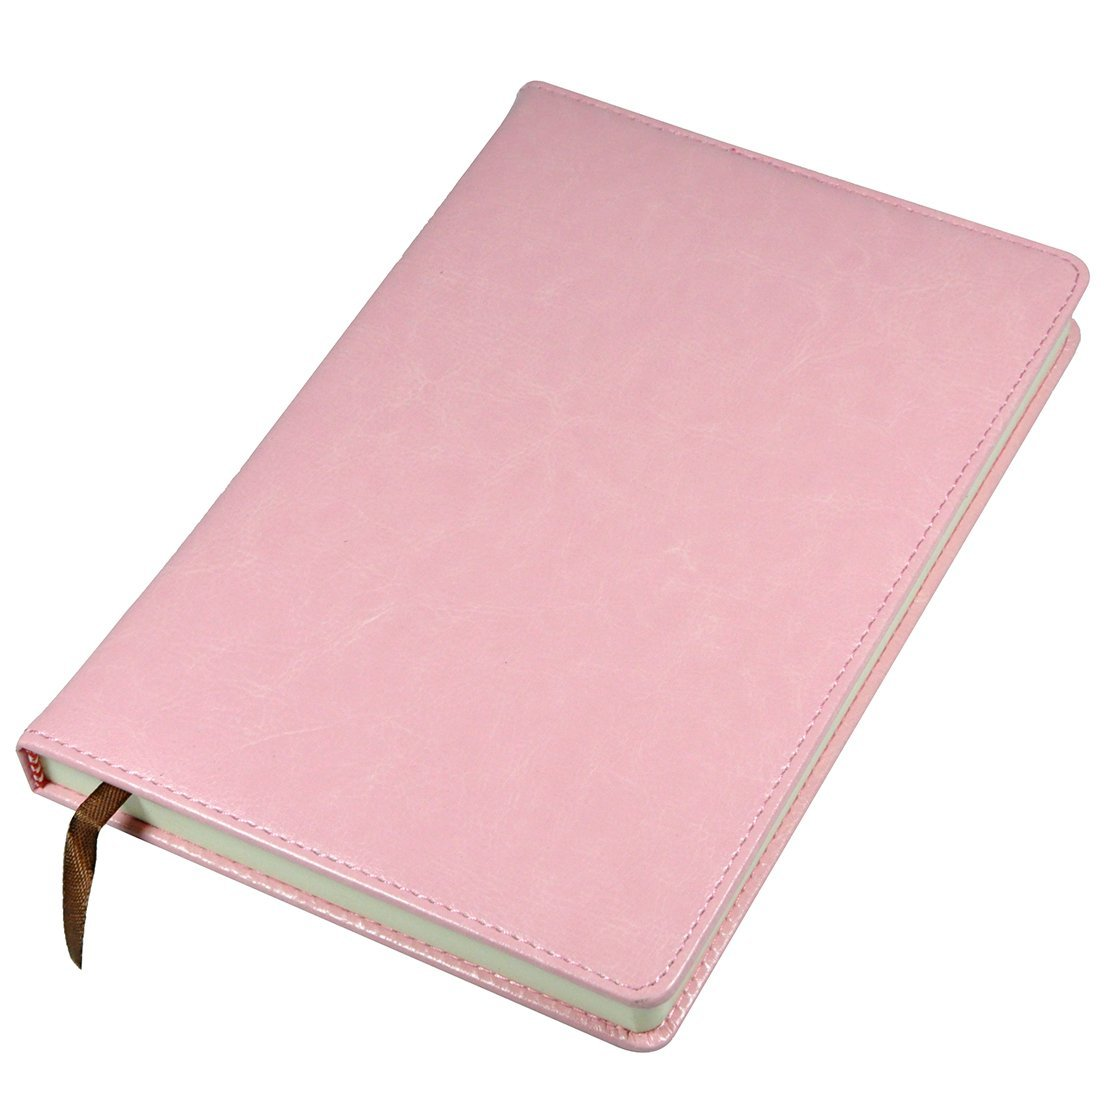 My favorite pink journal